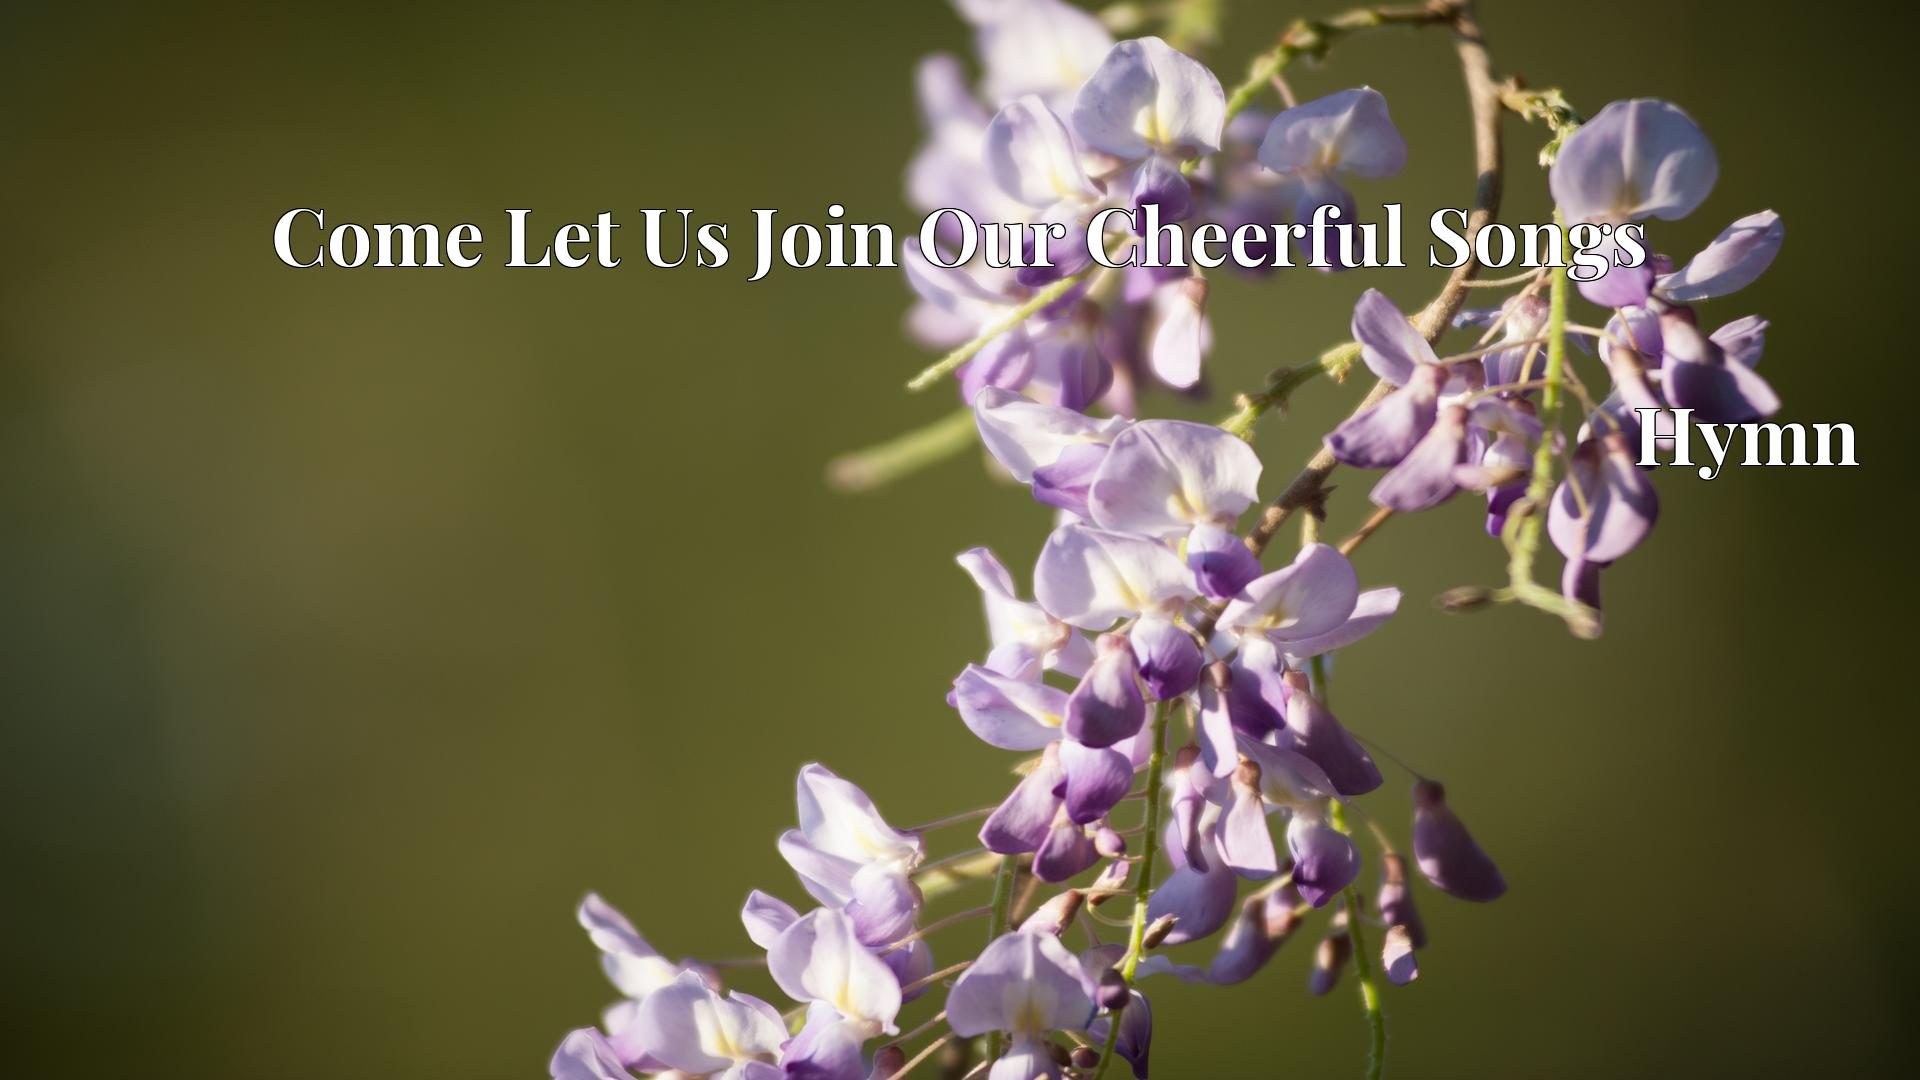 Come Let Us Join Our Cheerful Songs - Hymn